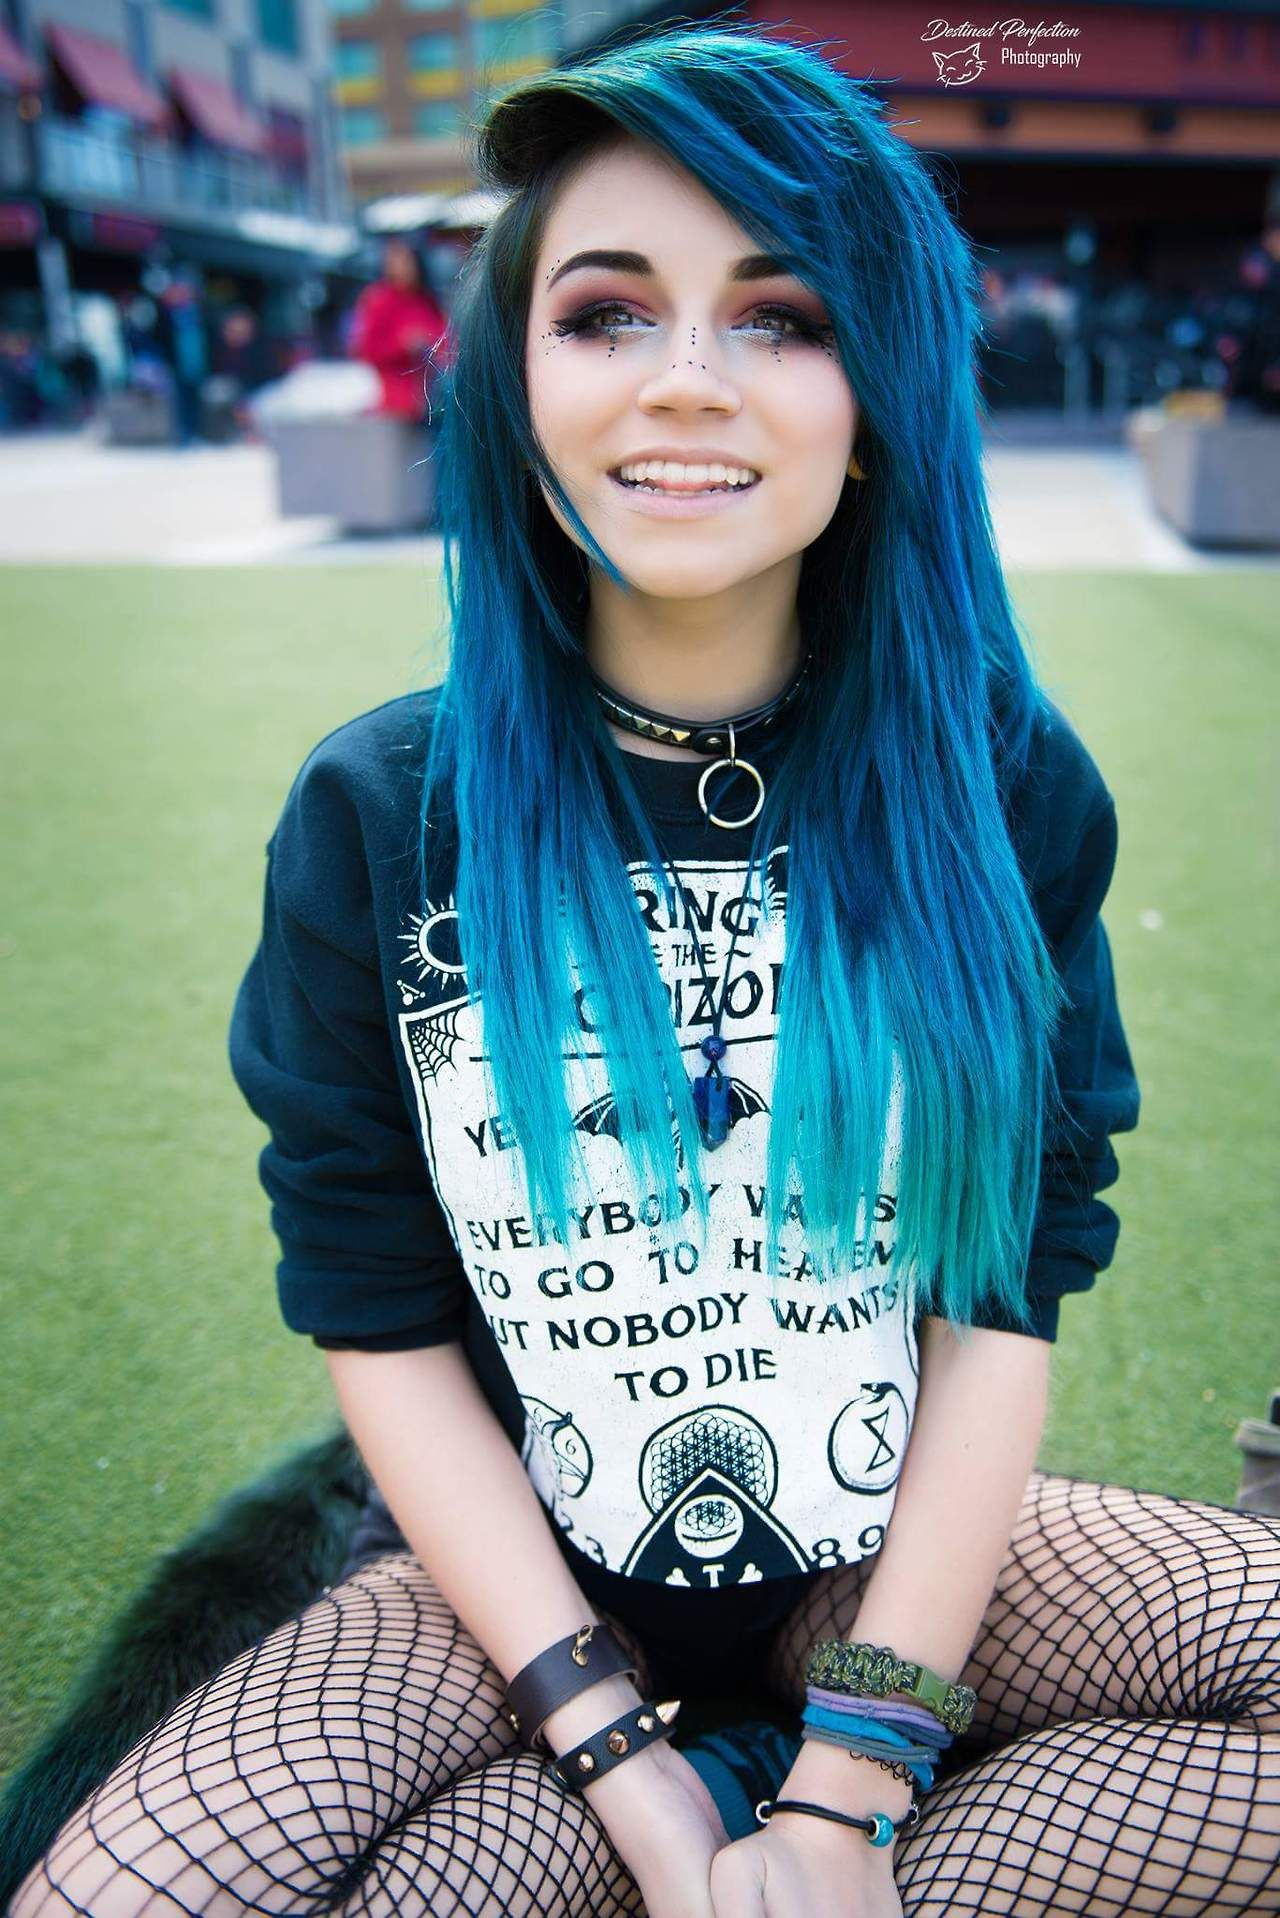 Emo scene girls hair ideas in pinterest hair hair